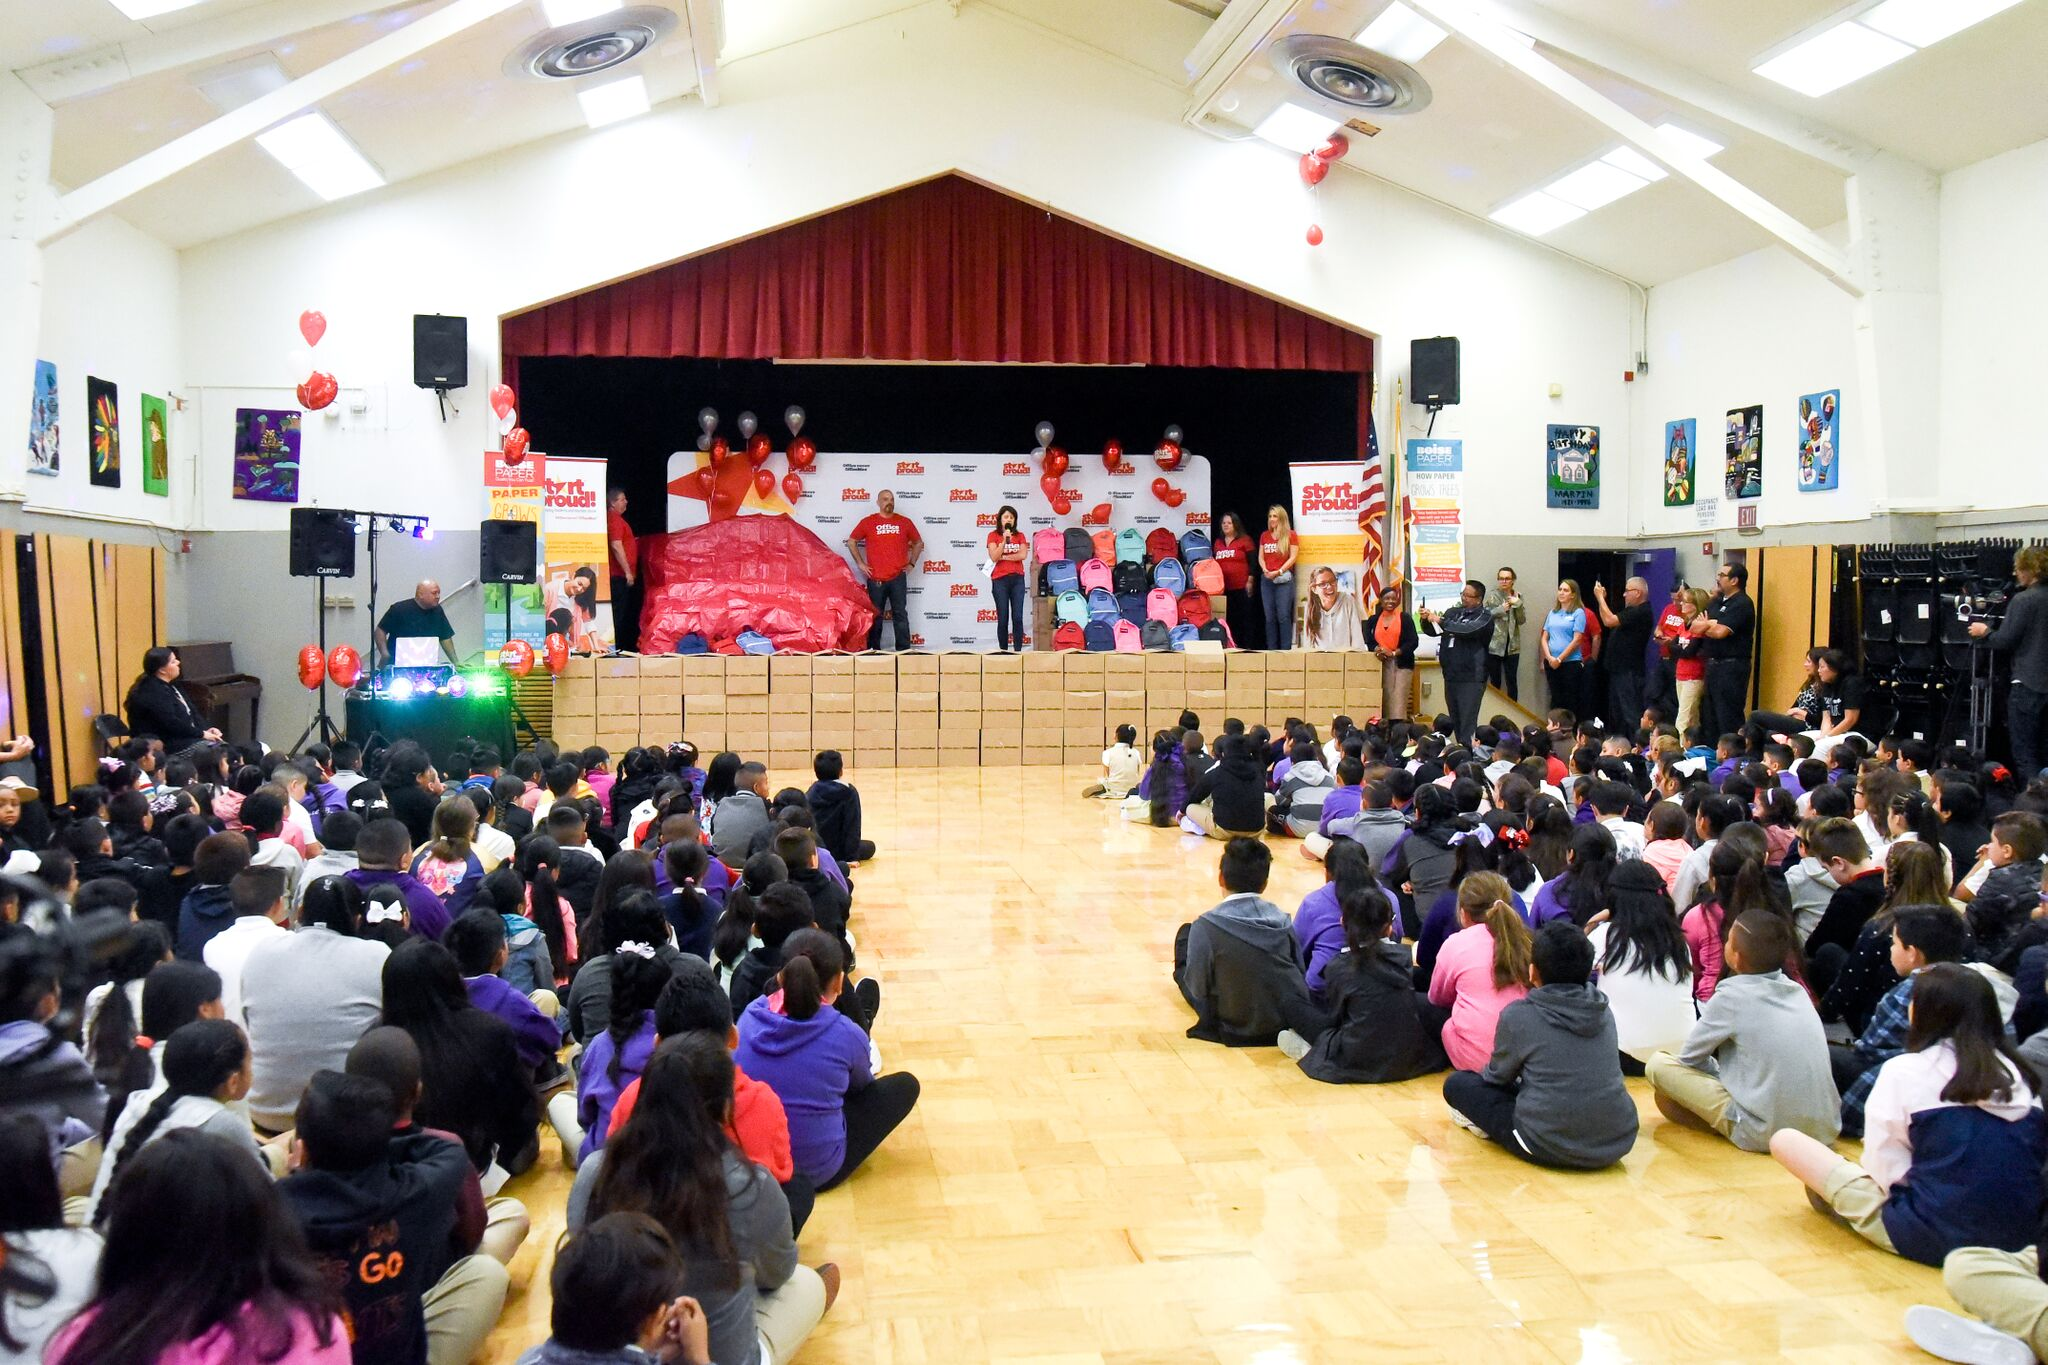 Office Depot's START PROUD Campaign Benefiting Martin Elementary School, Mrs. Carlino's Class and SSFUSD